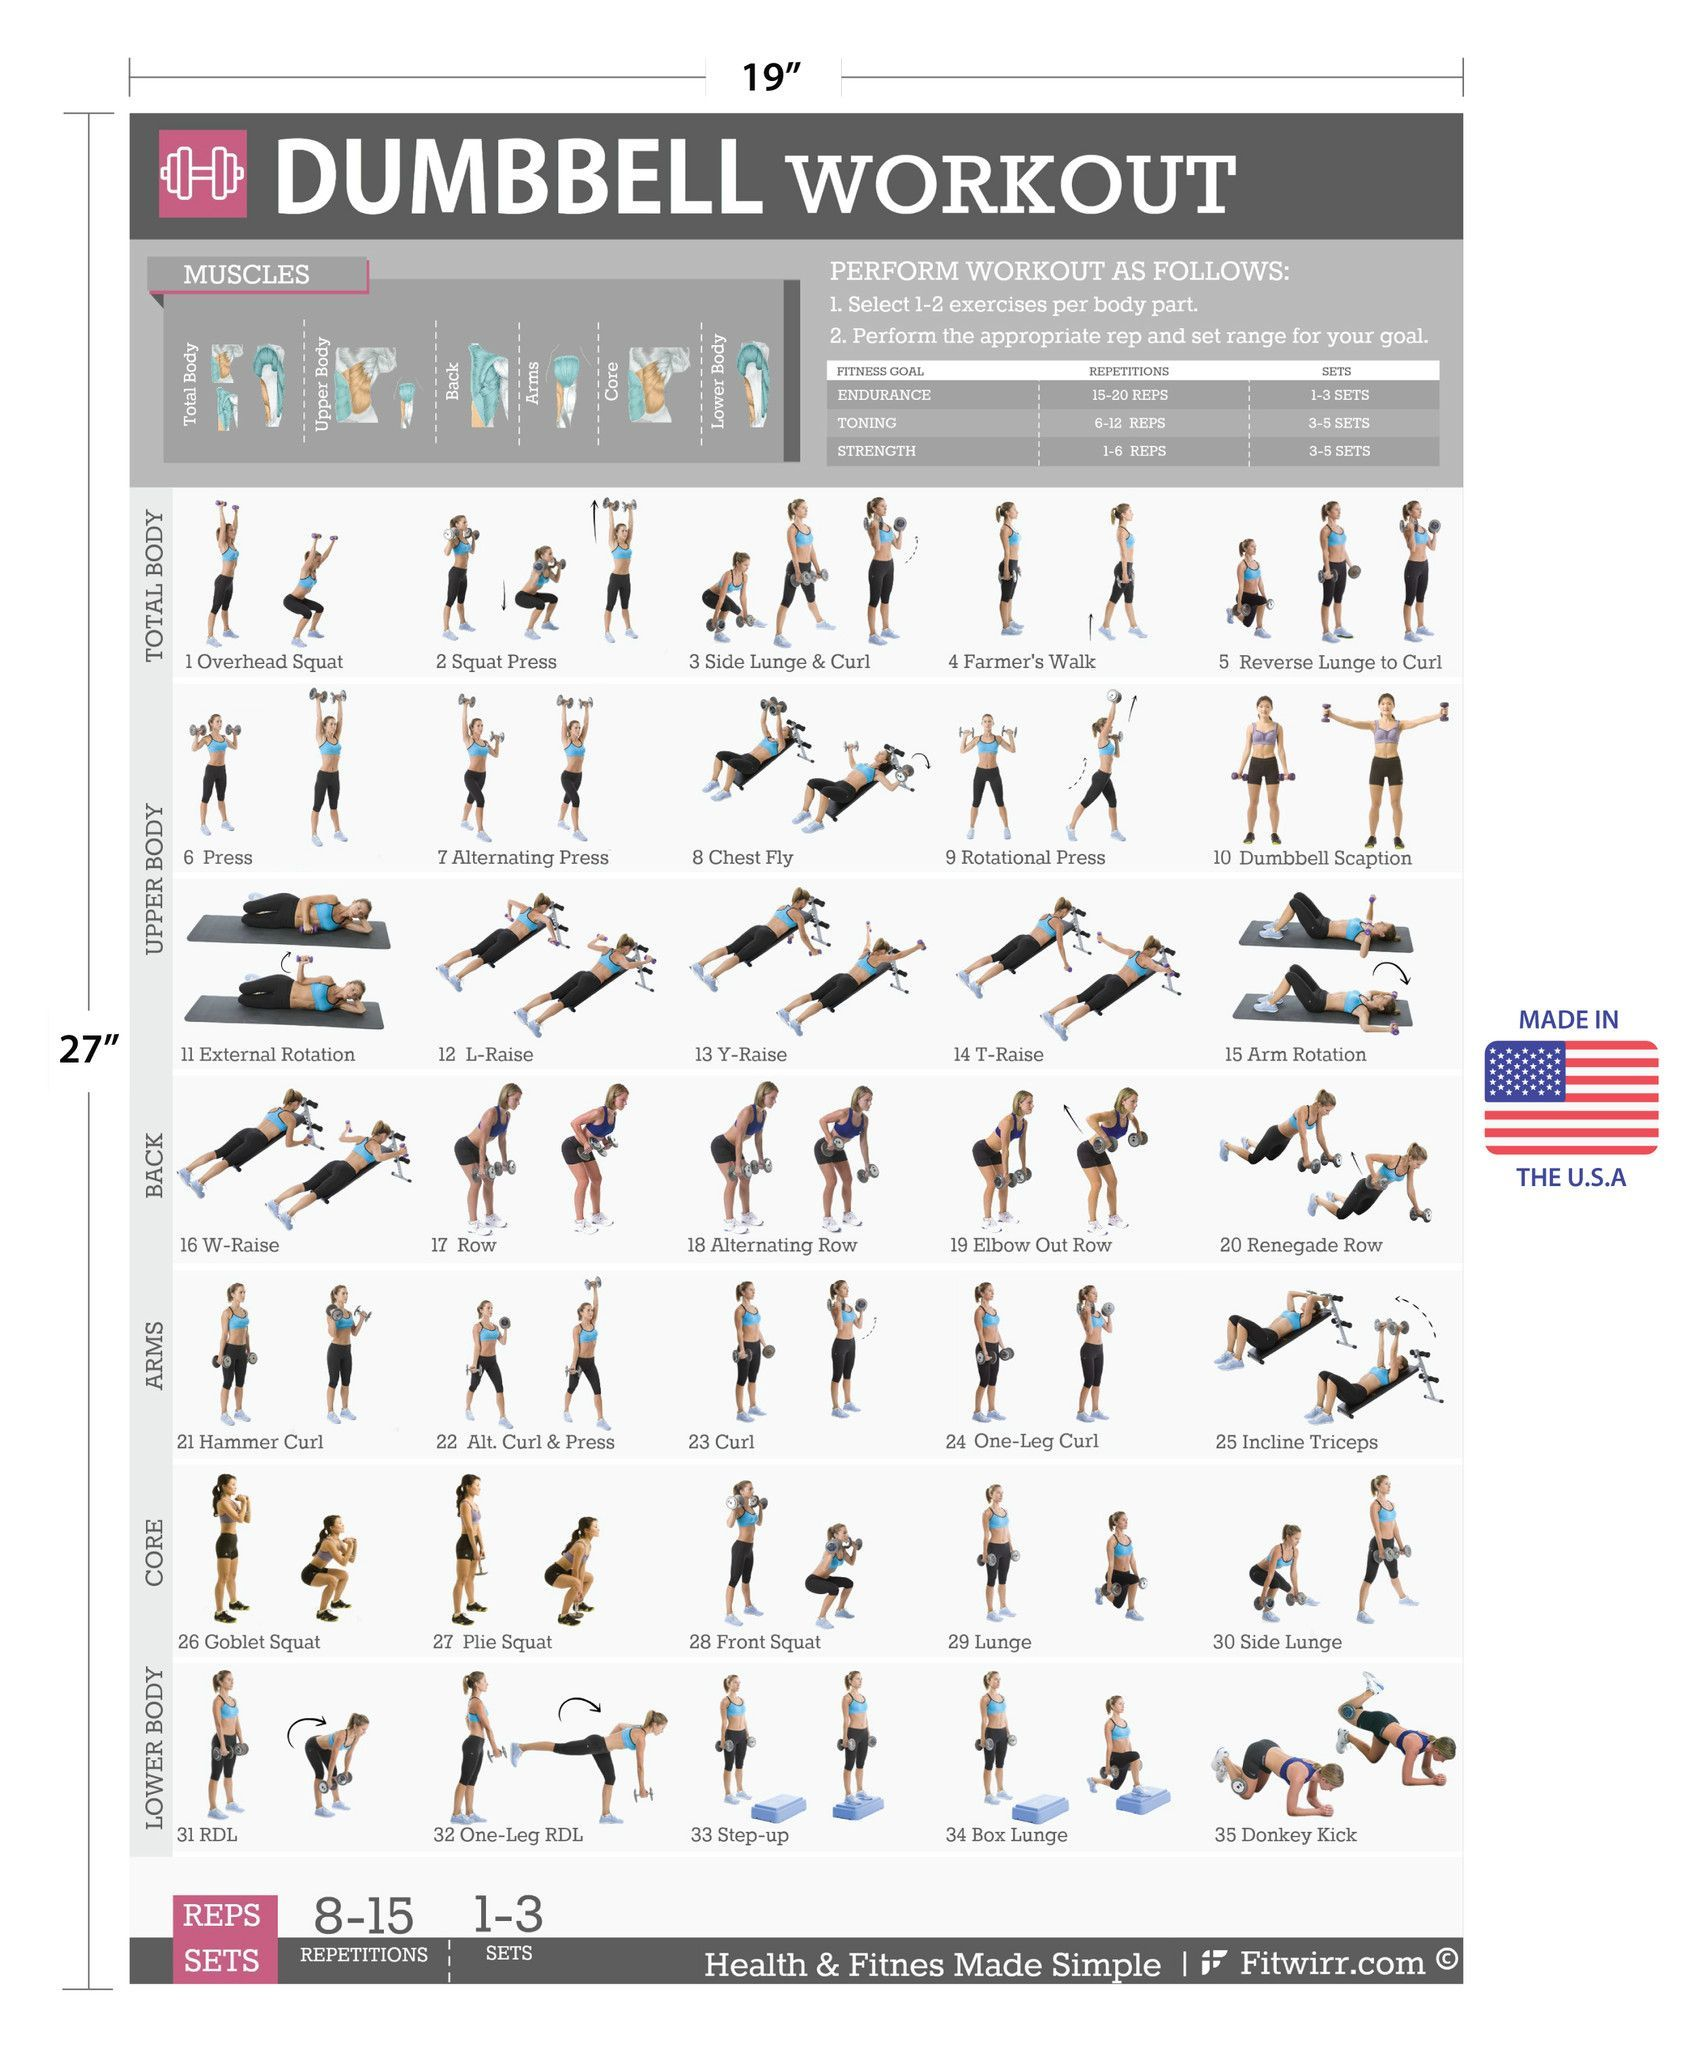 Free Weights Exercises: Dumbbell Exercise Workout Poster